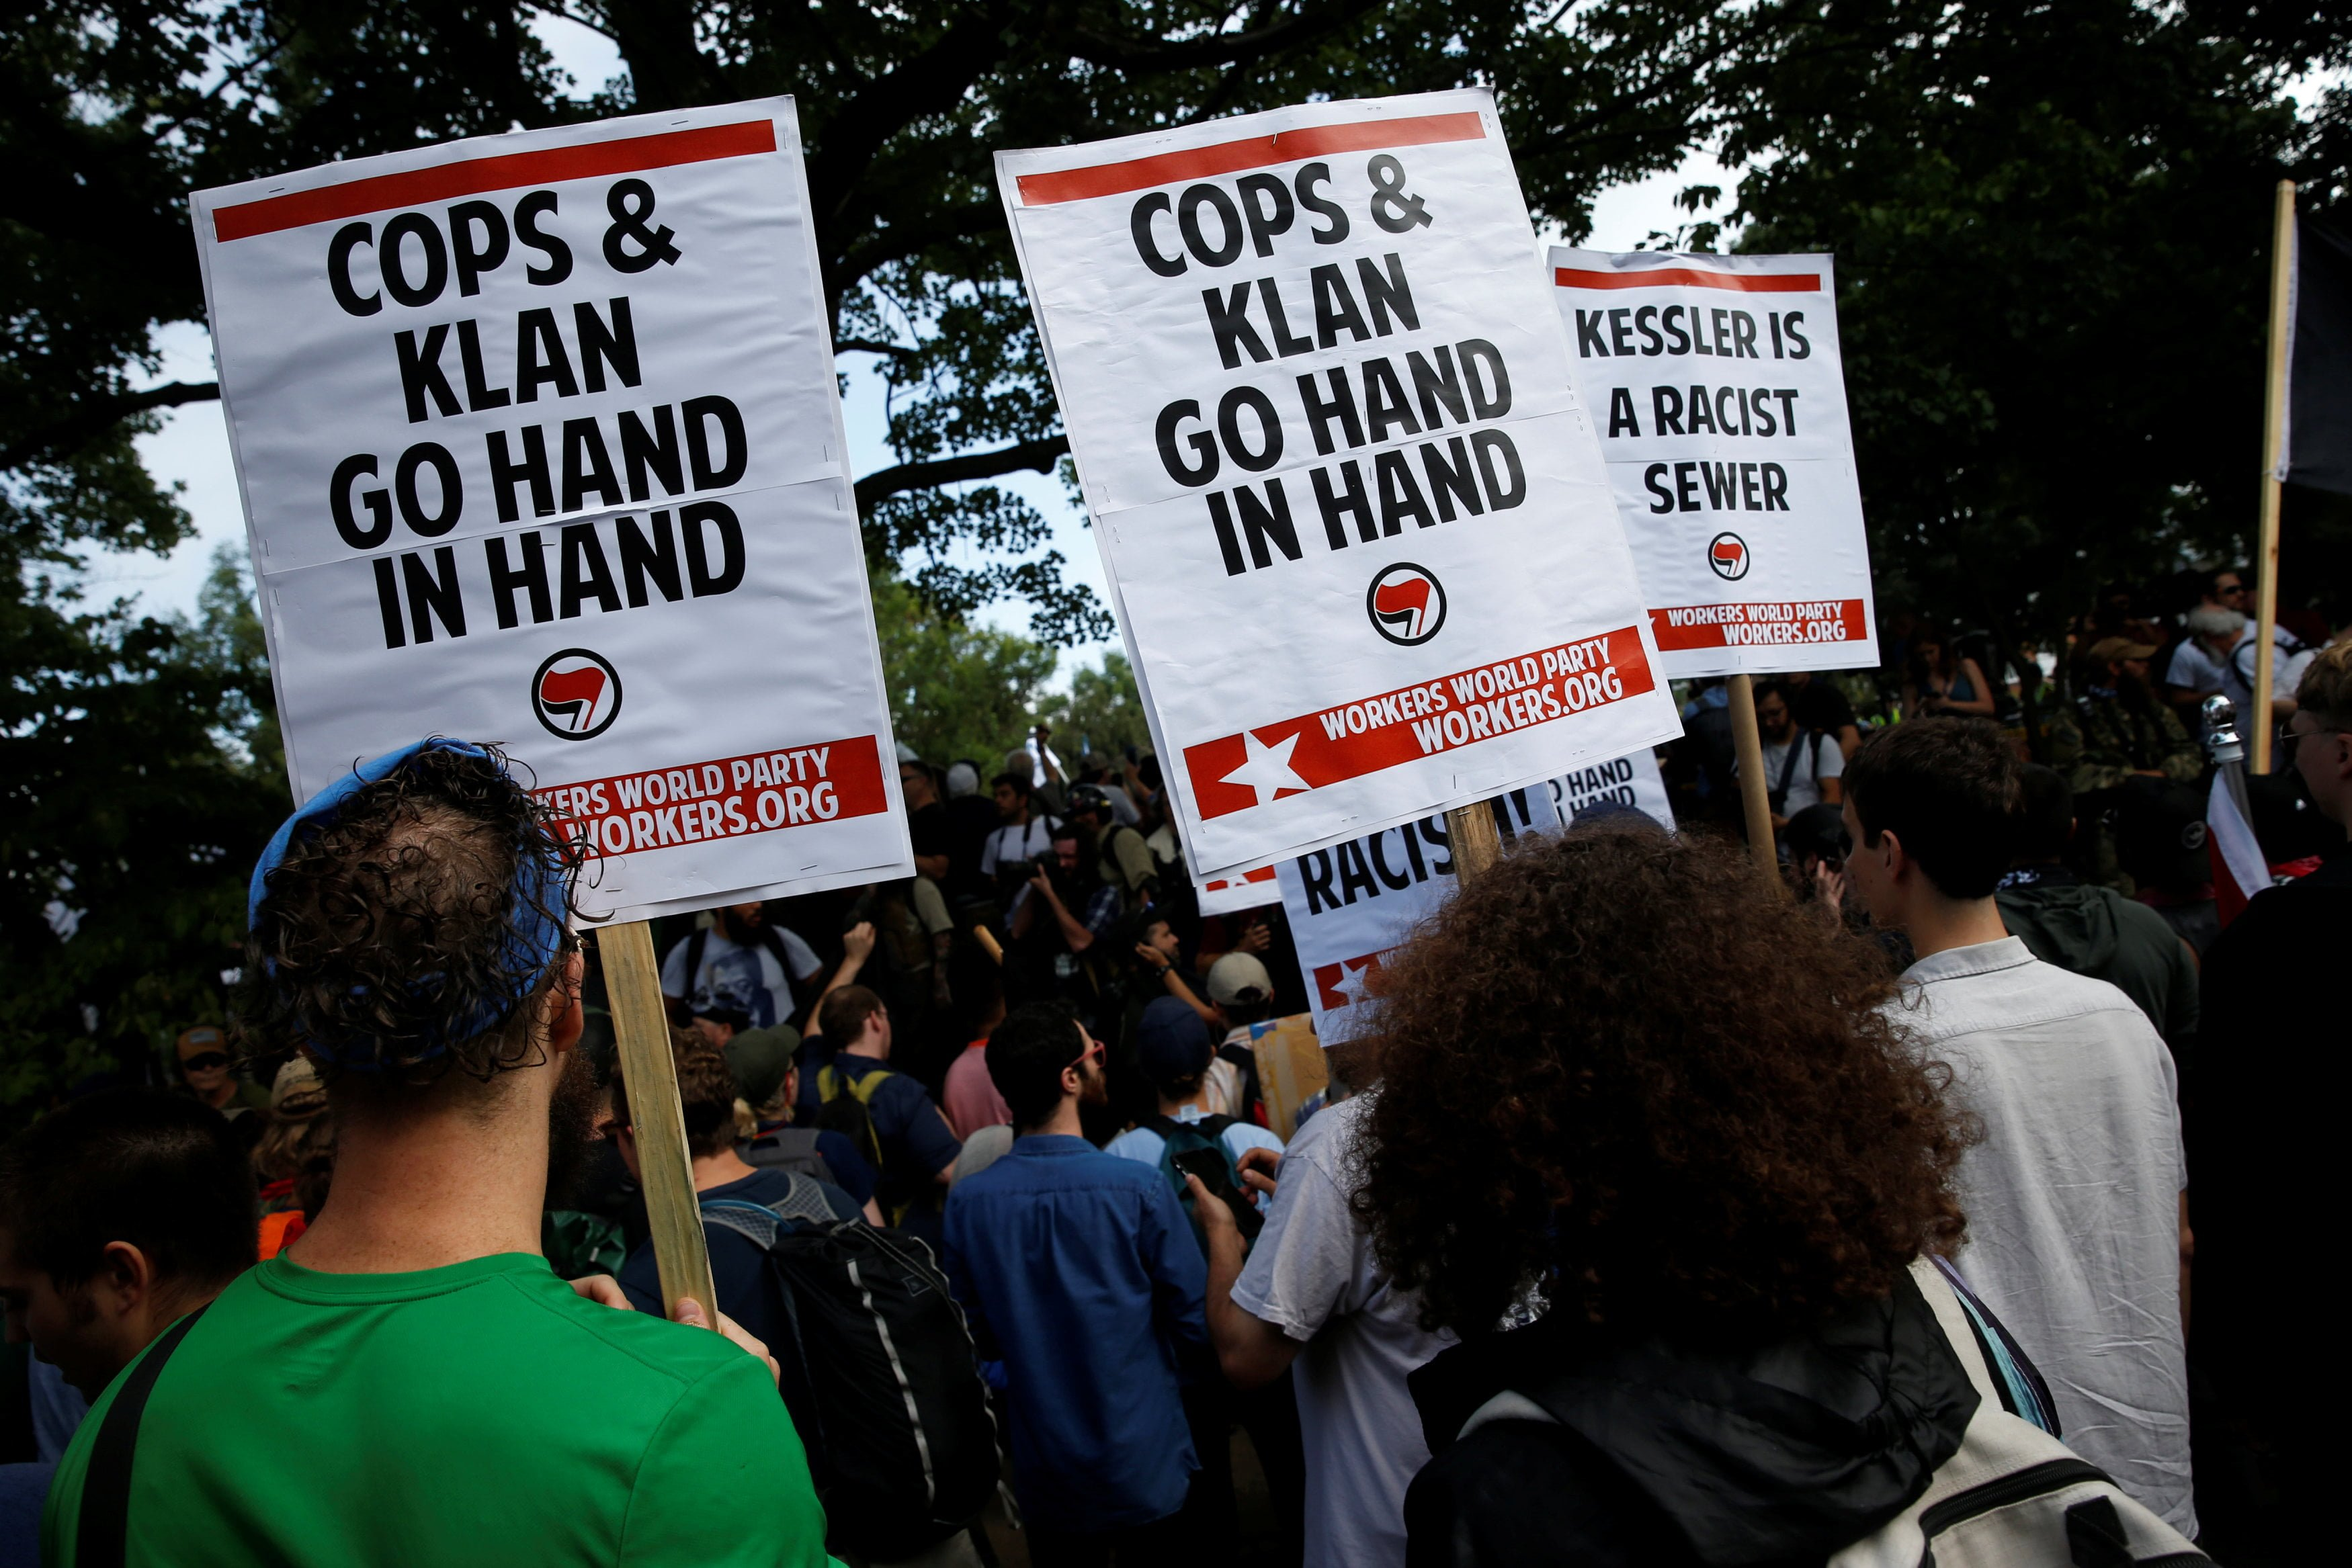 Counter demonstrators carry signs protesting white supremacists and police at a rally in Charlottesville, Virginia